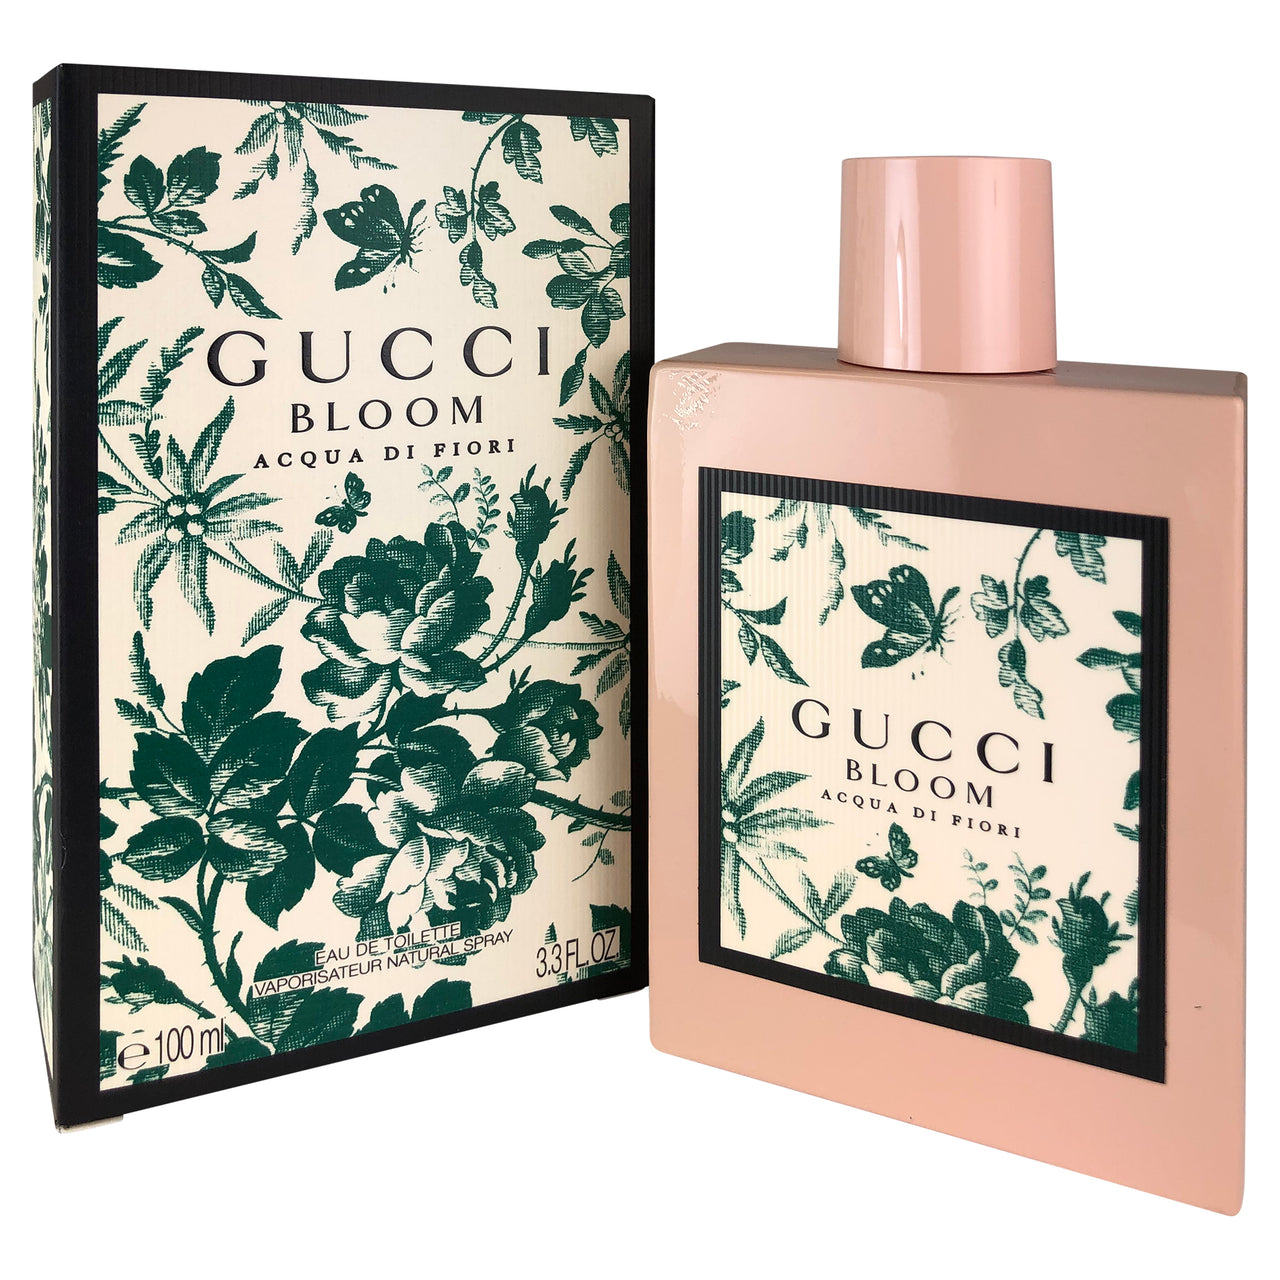 Gucci Bloom Acqua Di Fiori For Women By Gucci 3.3 oz Eau de Toilette Spray